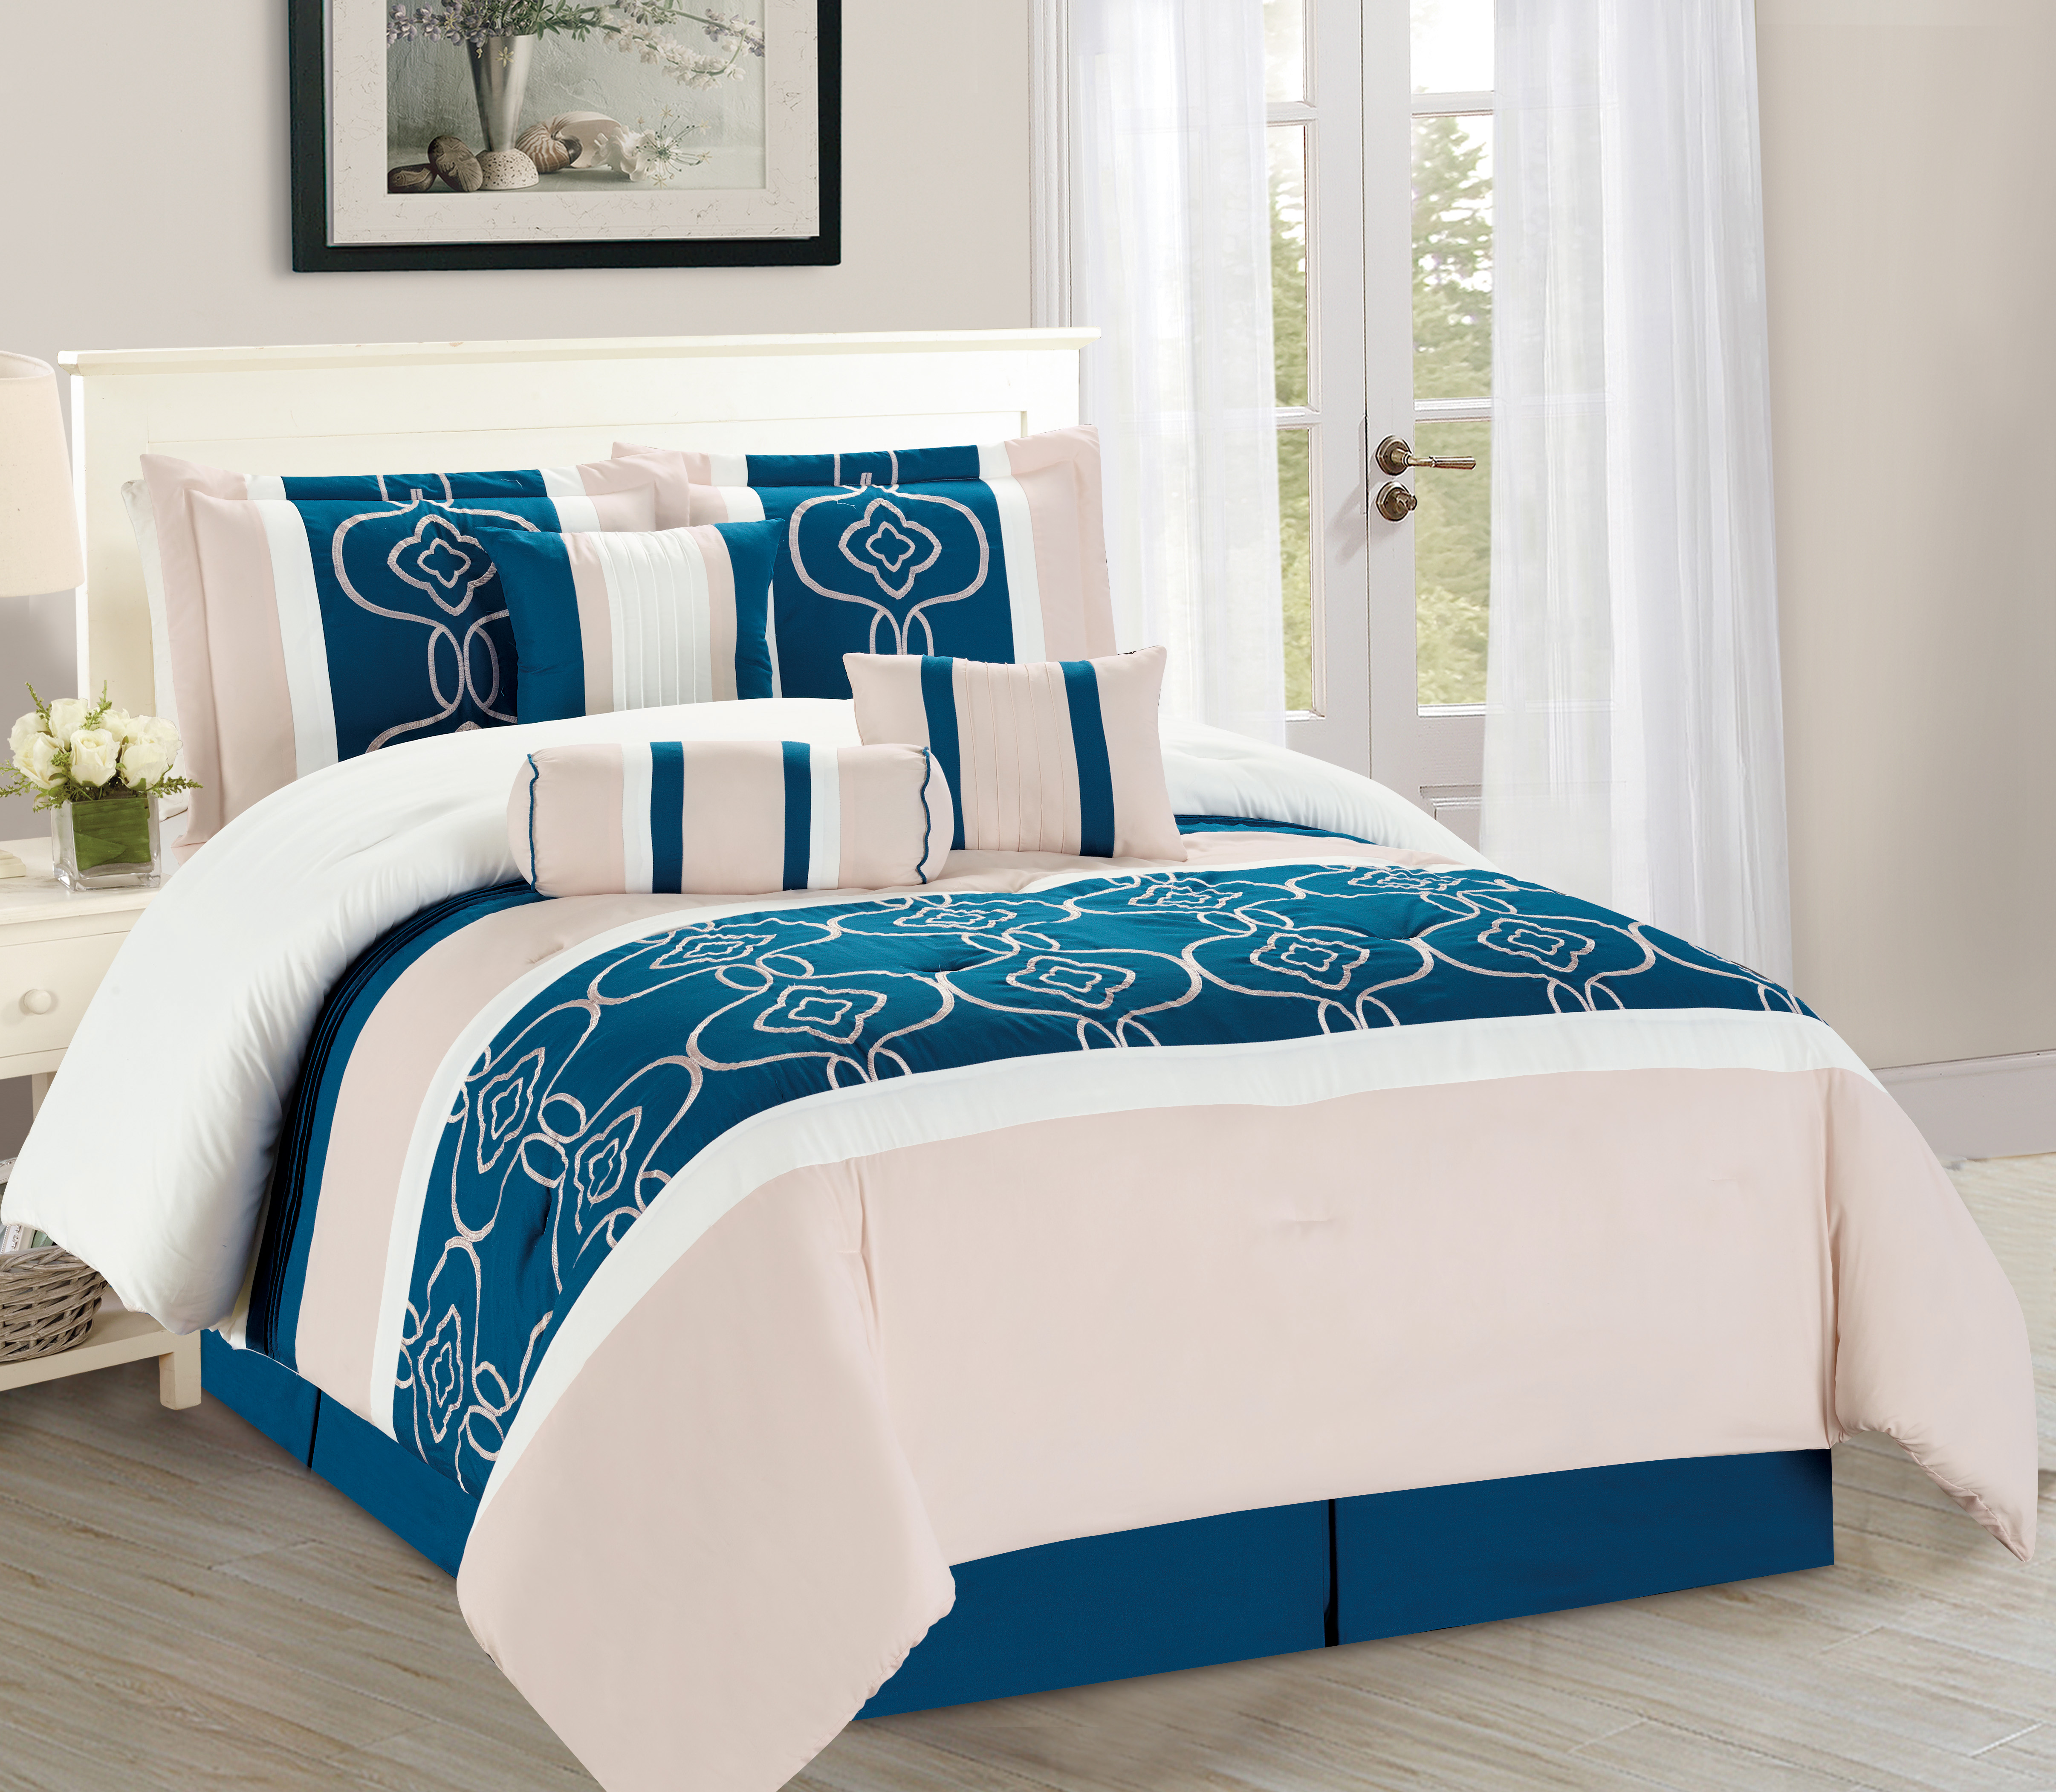 wpm 7 pieces complete bedding ensemble turquoise blue white beige print luxury embroidery comforter set bed